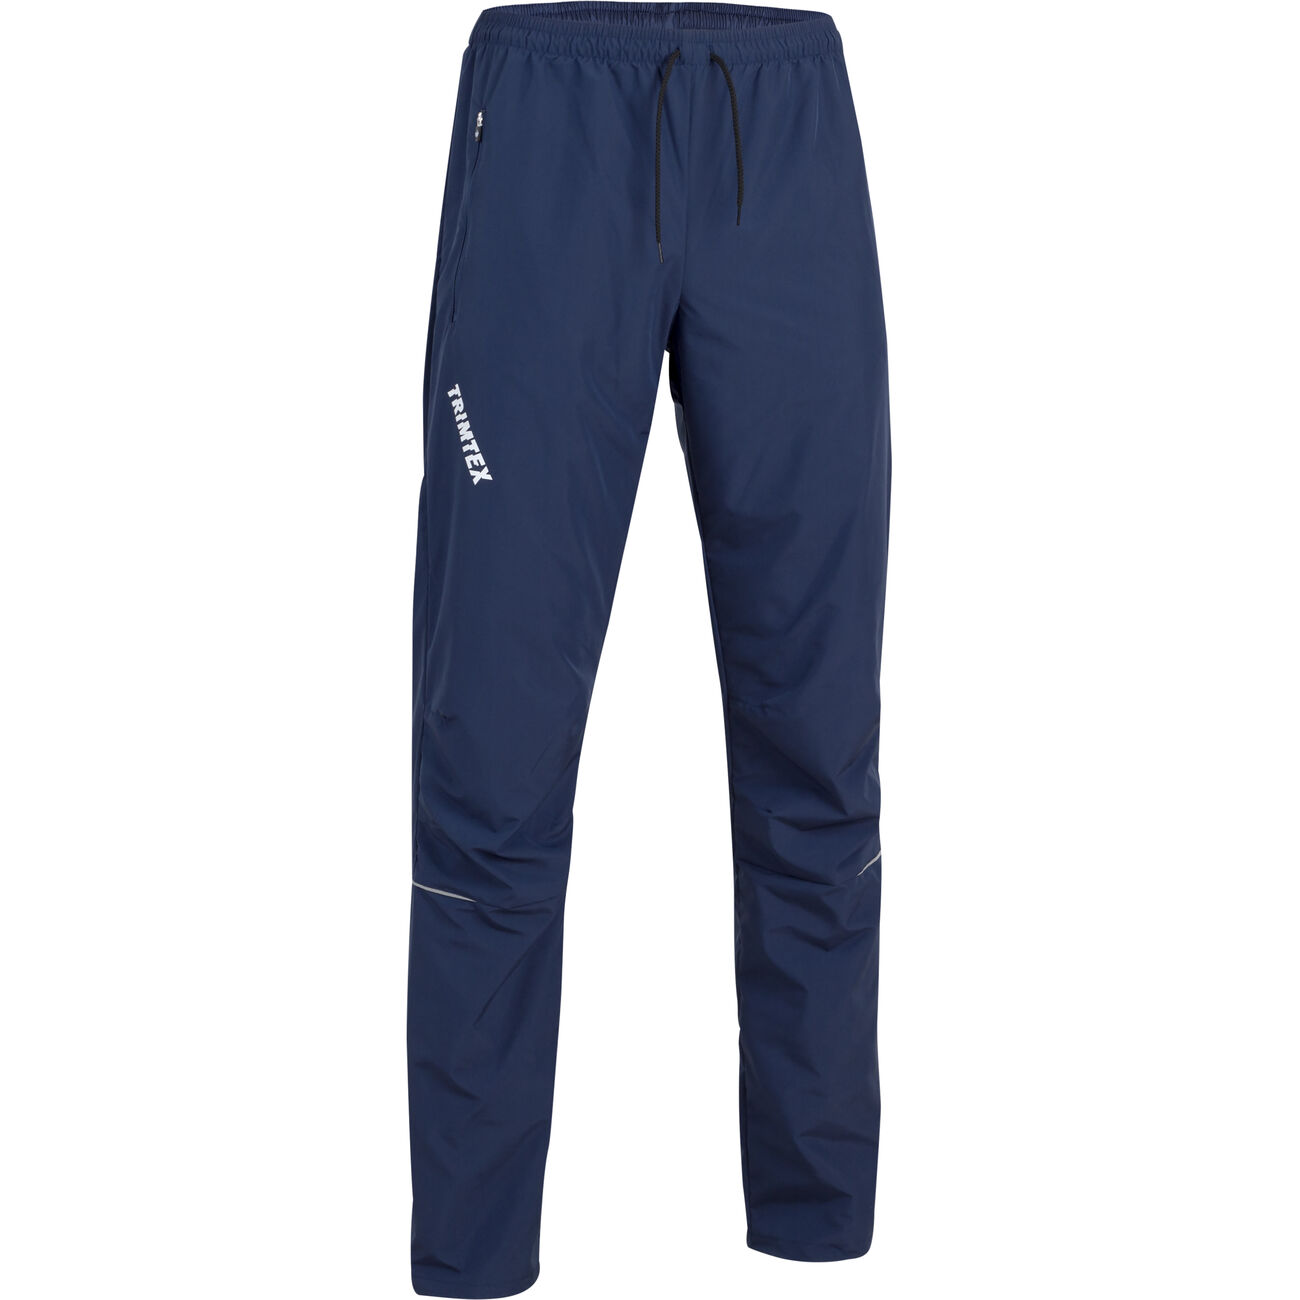 Performance training pants men's